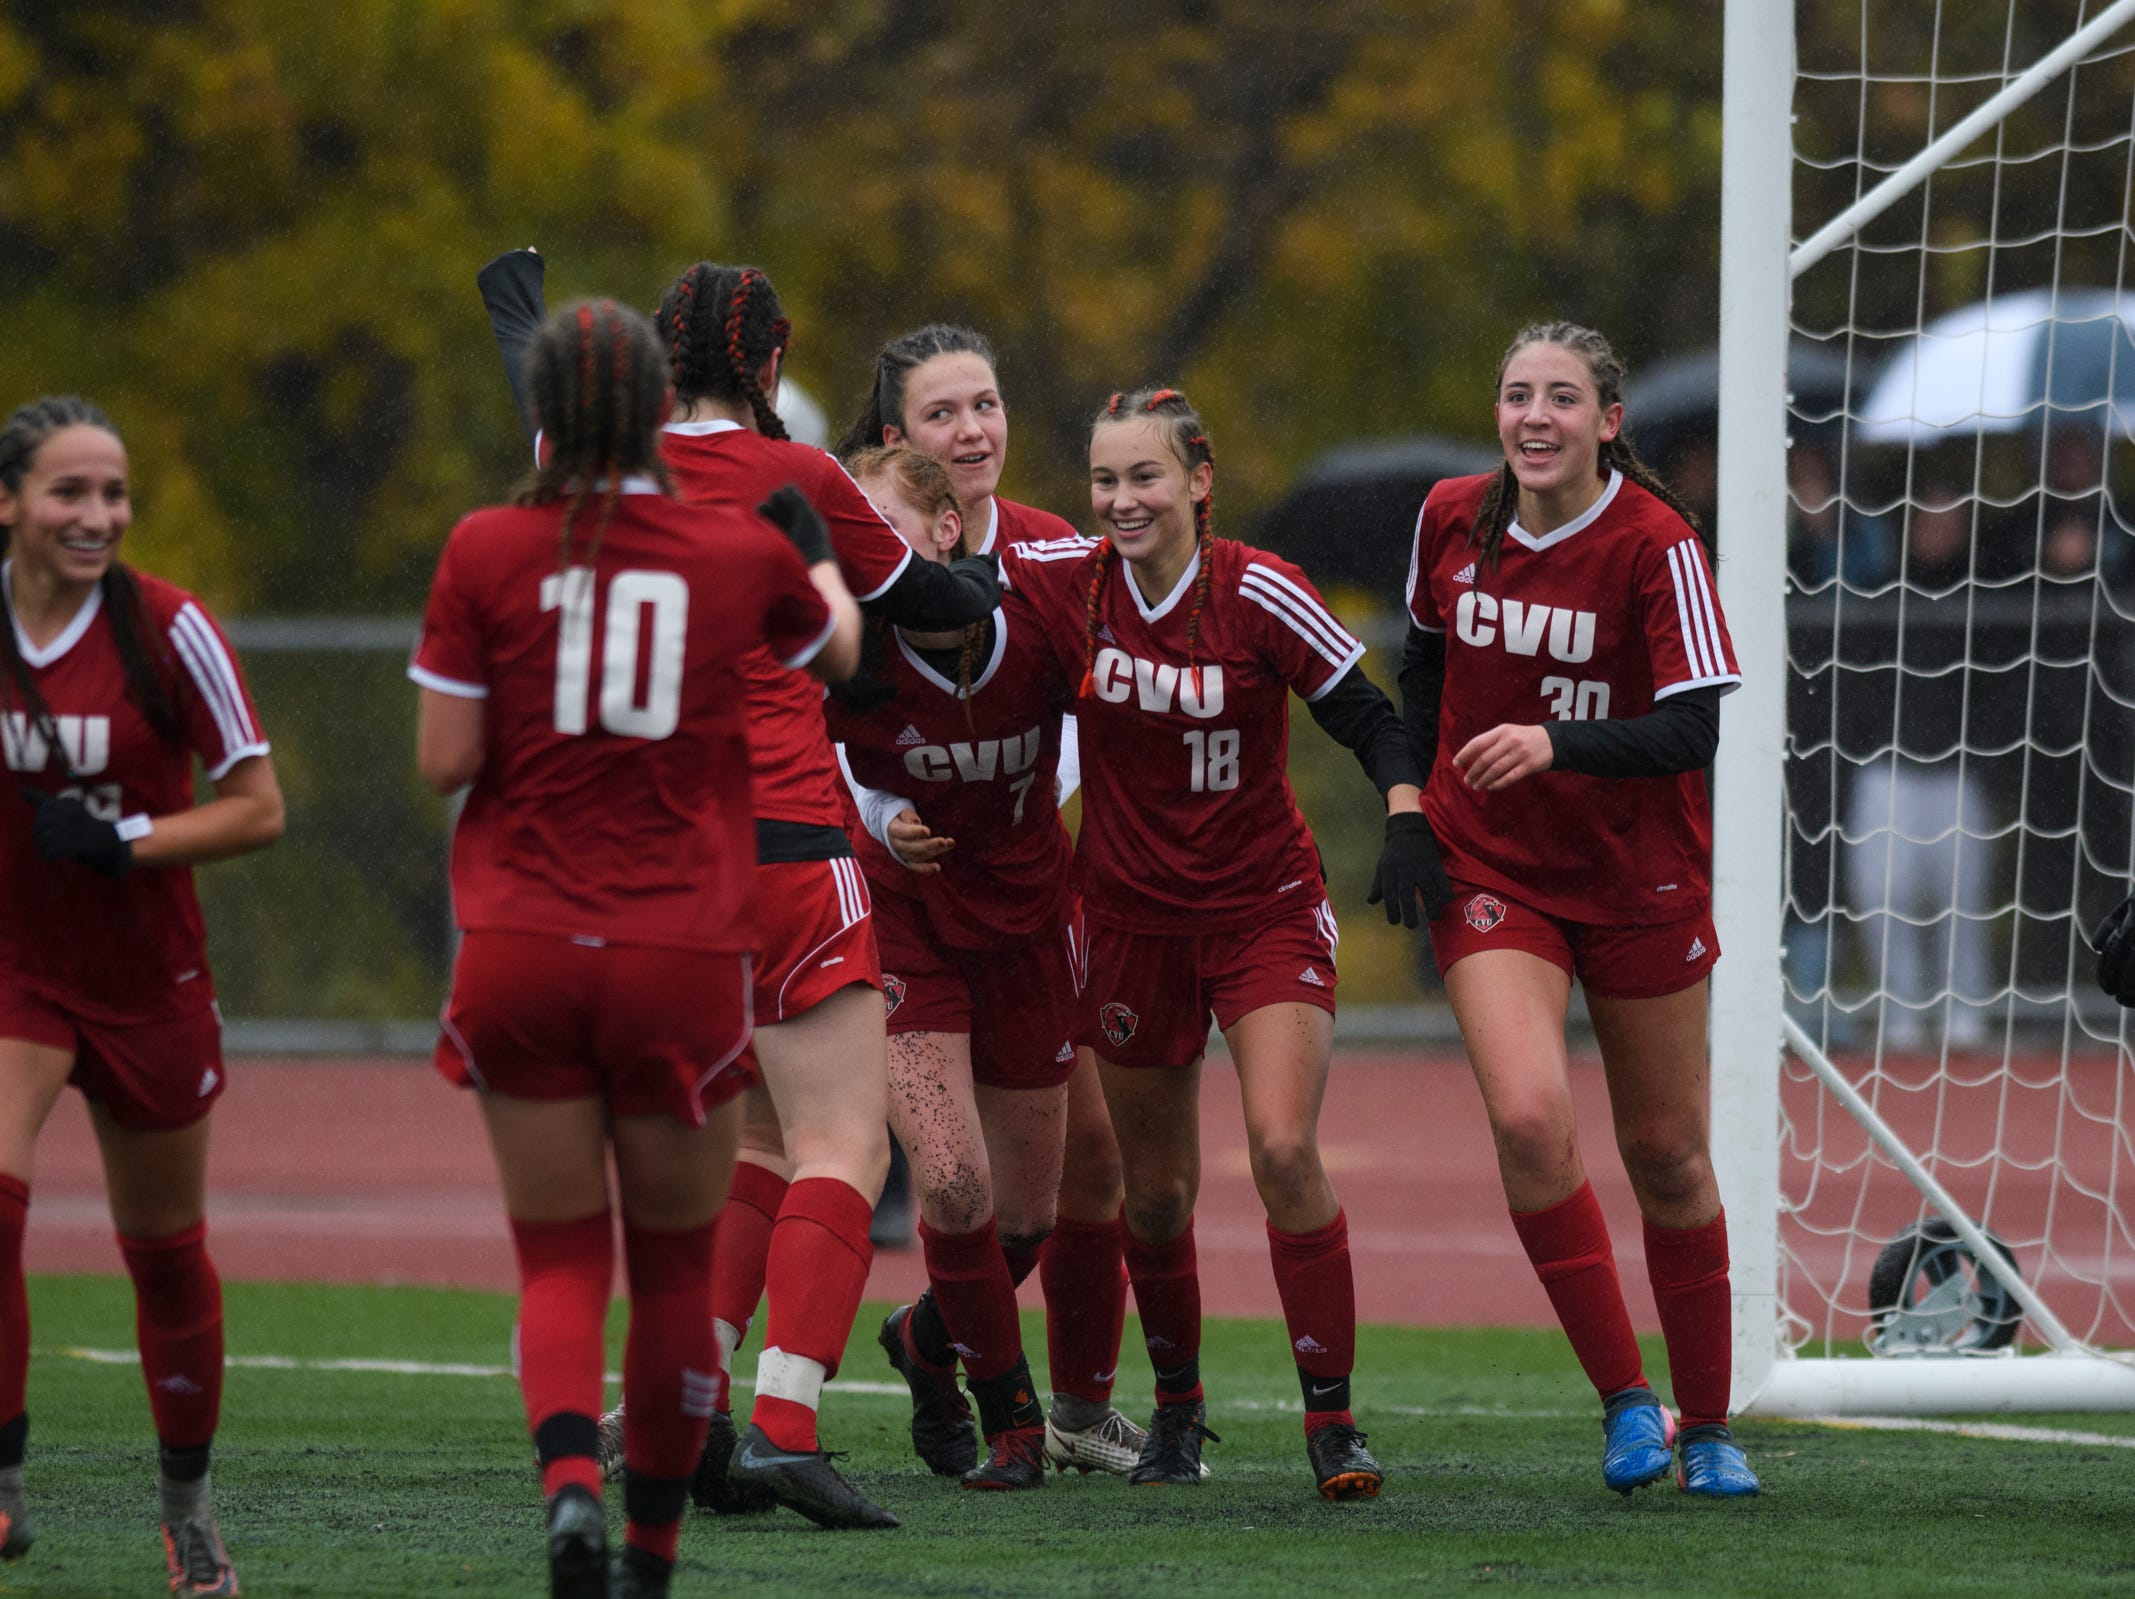 CVU celebrates a goal during the division I girls soccer championship game between the Colchester Lakers and the Champlain Valley Union Redhawks at Buck Hard Field on Saturday morning November 3, 2018 in Burlington.